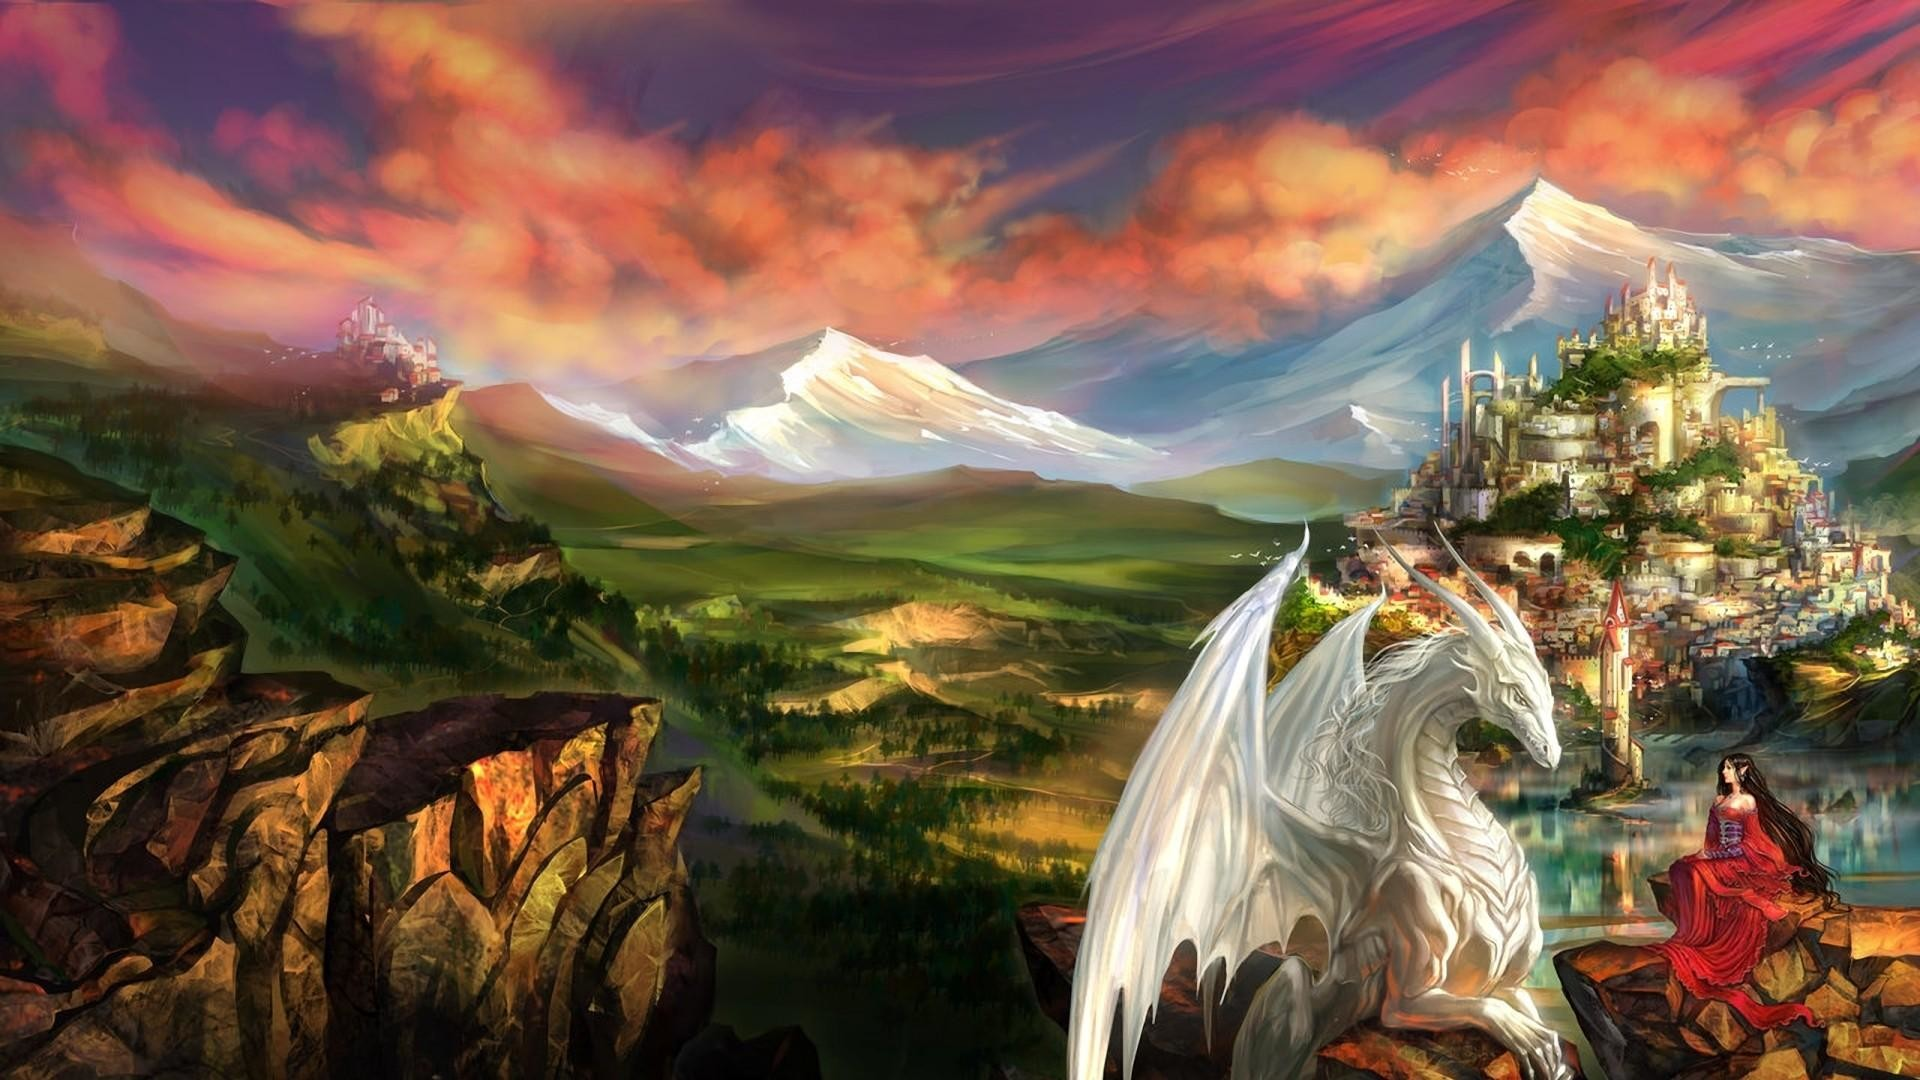 Res: 1920x1080, Dragon And Elf - Fantasy Art Wallpaper | Wallpaper Studio 10 | Tens of  thousands HD and UltraHD wallpapers for Android, Windows and Xbox